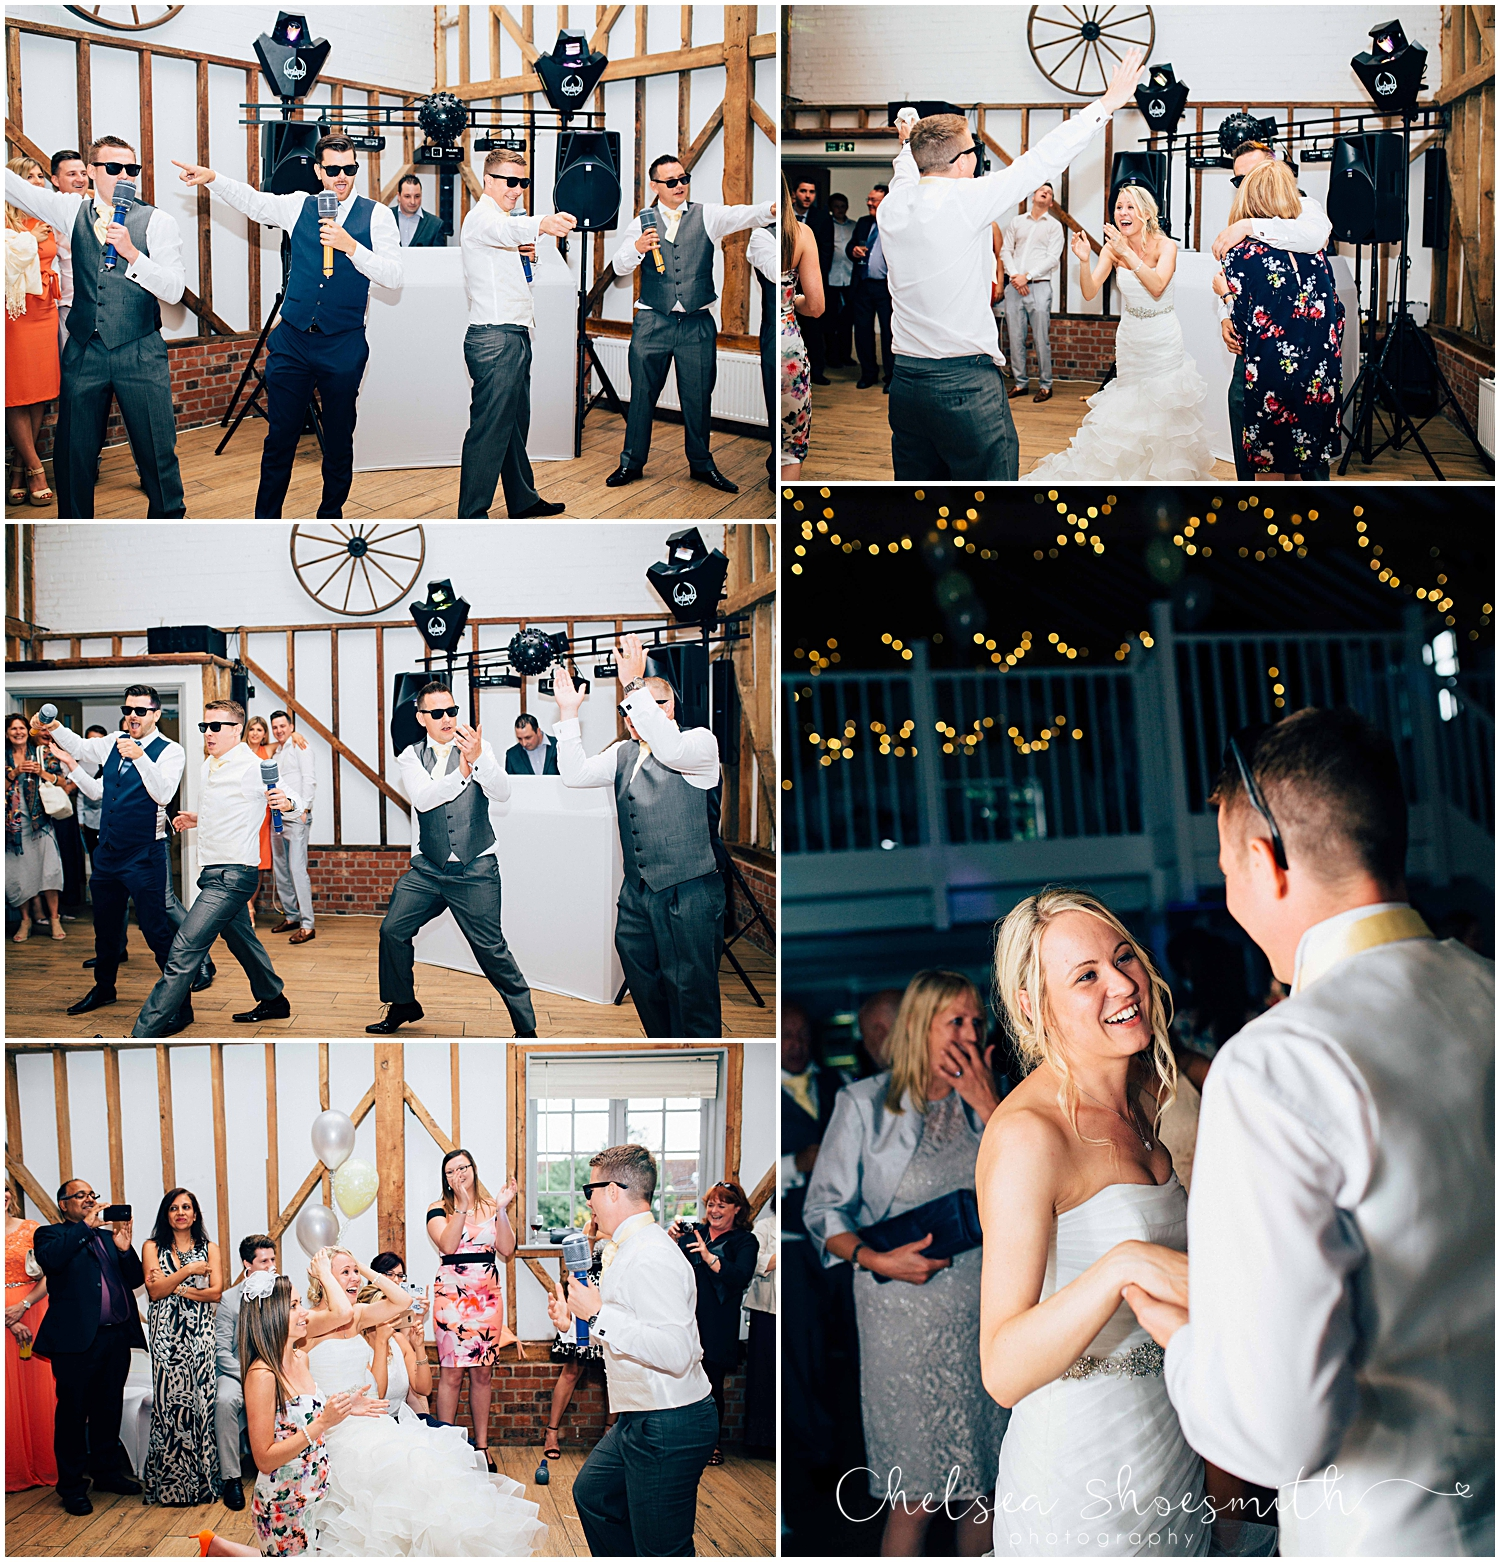 (517 of 548) Lauren & Andy Hertfordshire Wedding Milling Barn Chelsea Shoesmith Photography-1